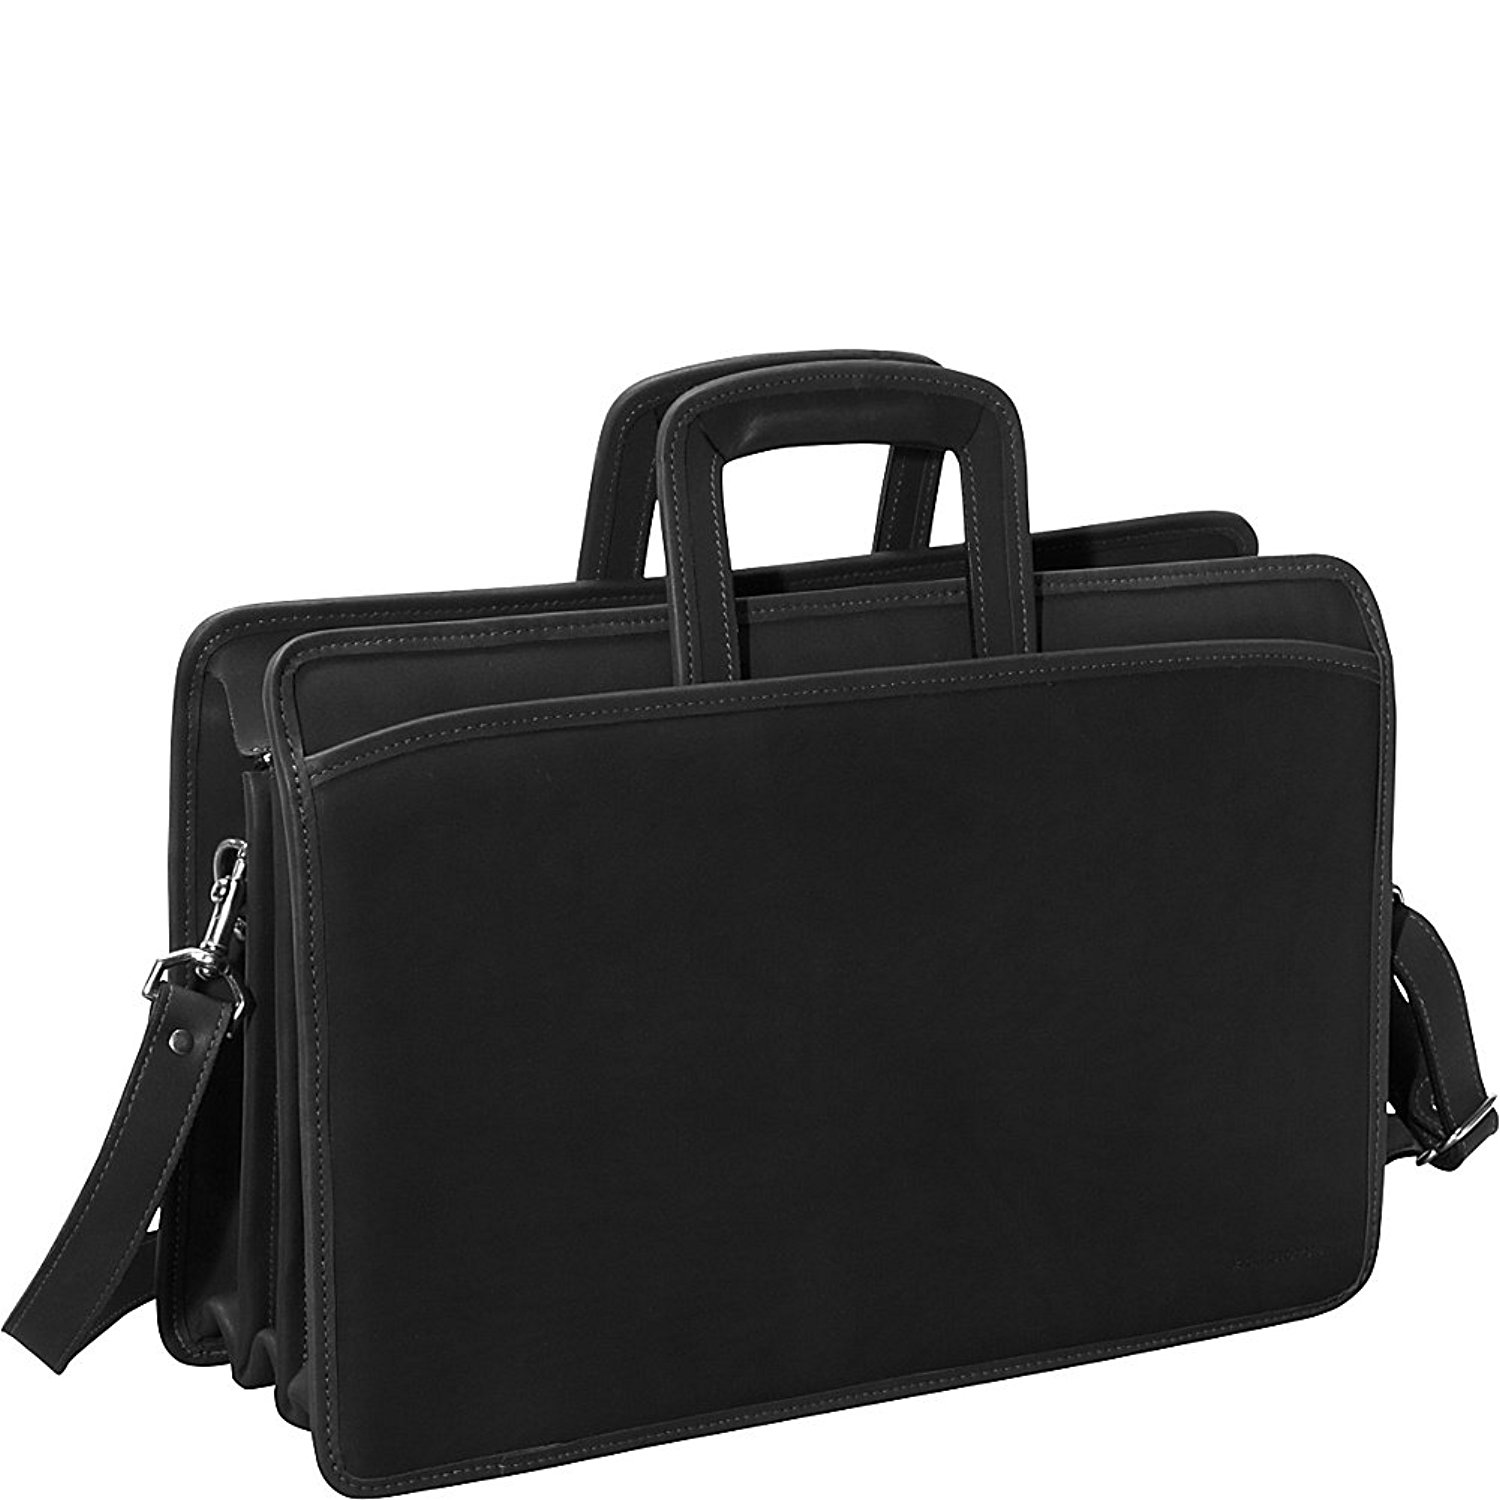 c791eb334d4f Cheap Top Zip Briefcase, find Top Zip Briefcase deals on line at ...